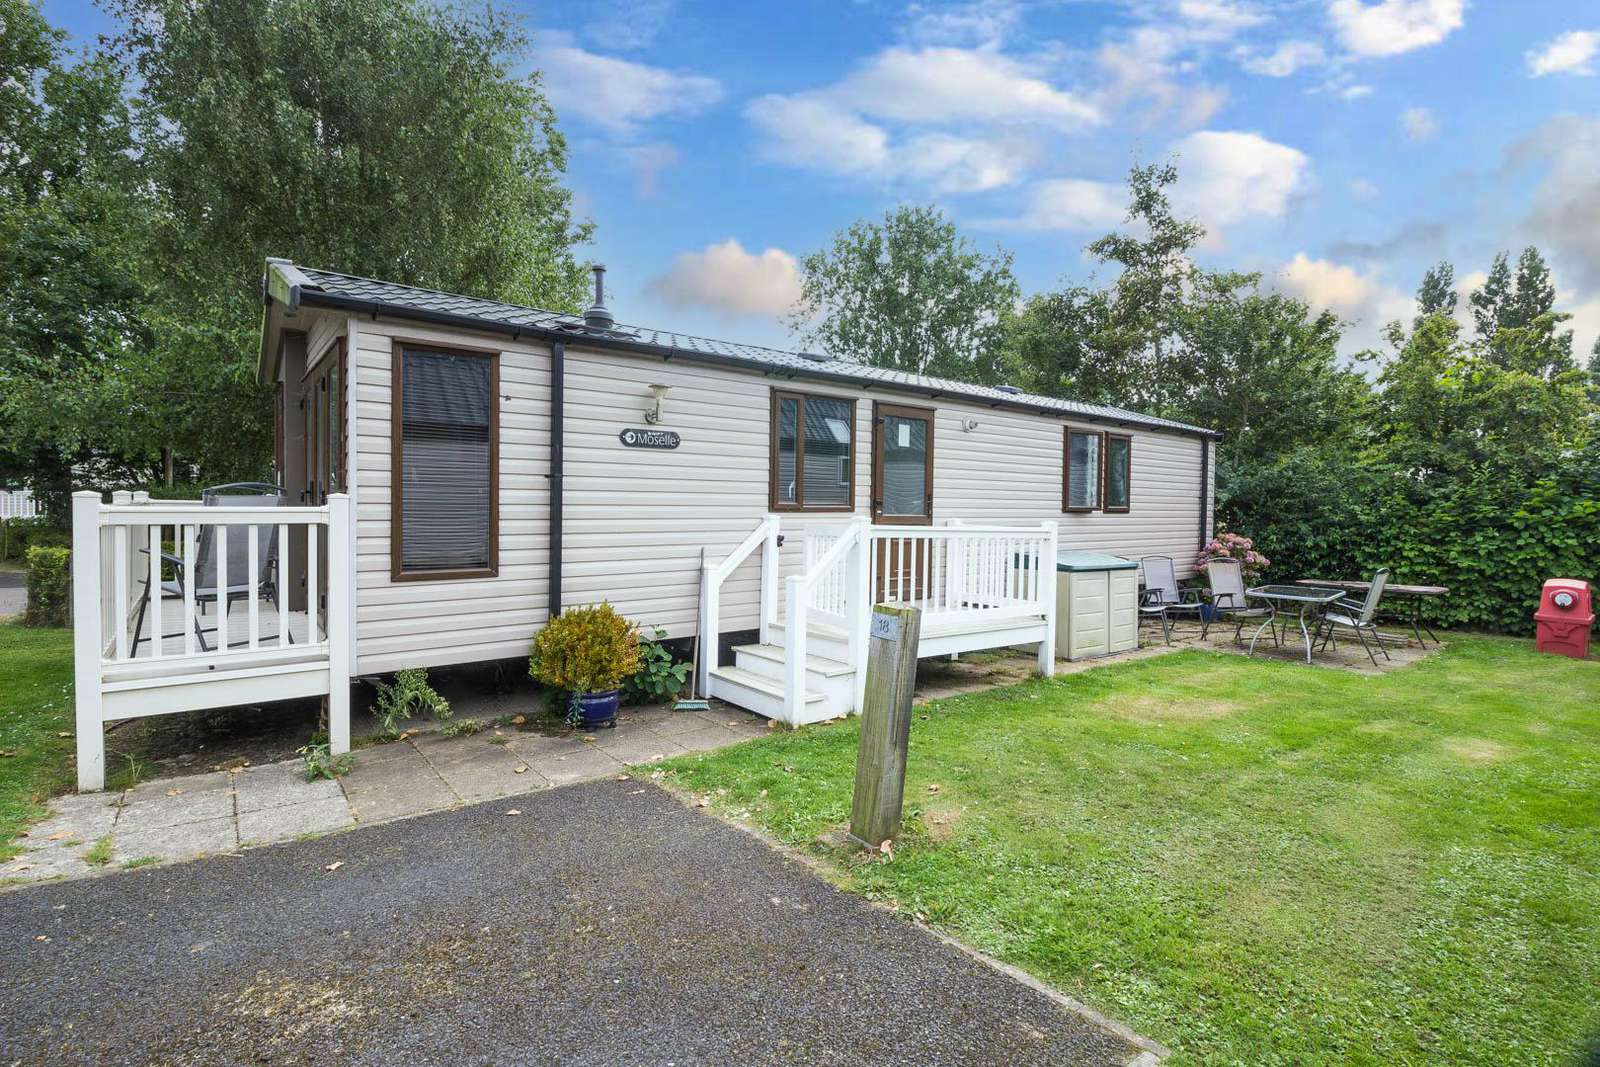 80018B – Birkdale area, 3 bed, 8 berth caravan with decking. Diamond rated. - property